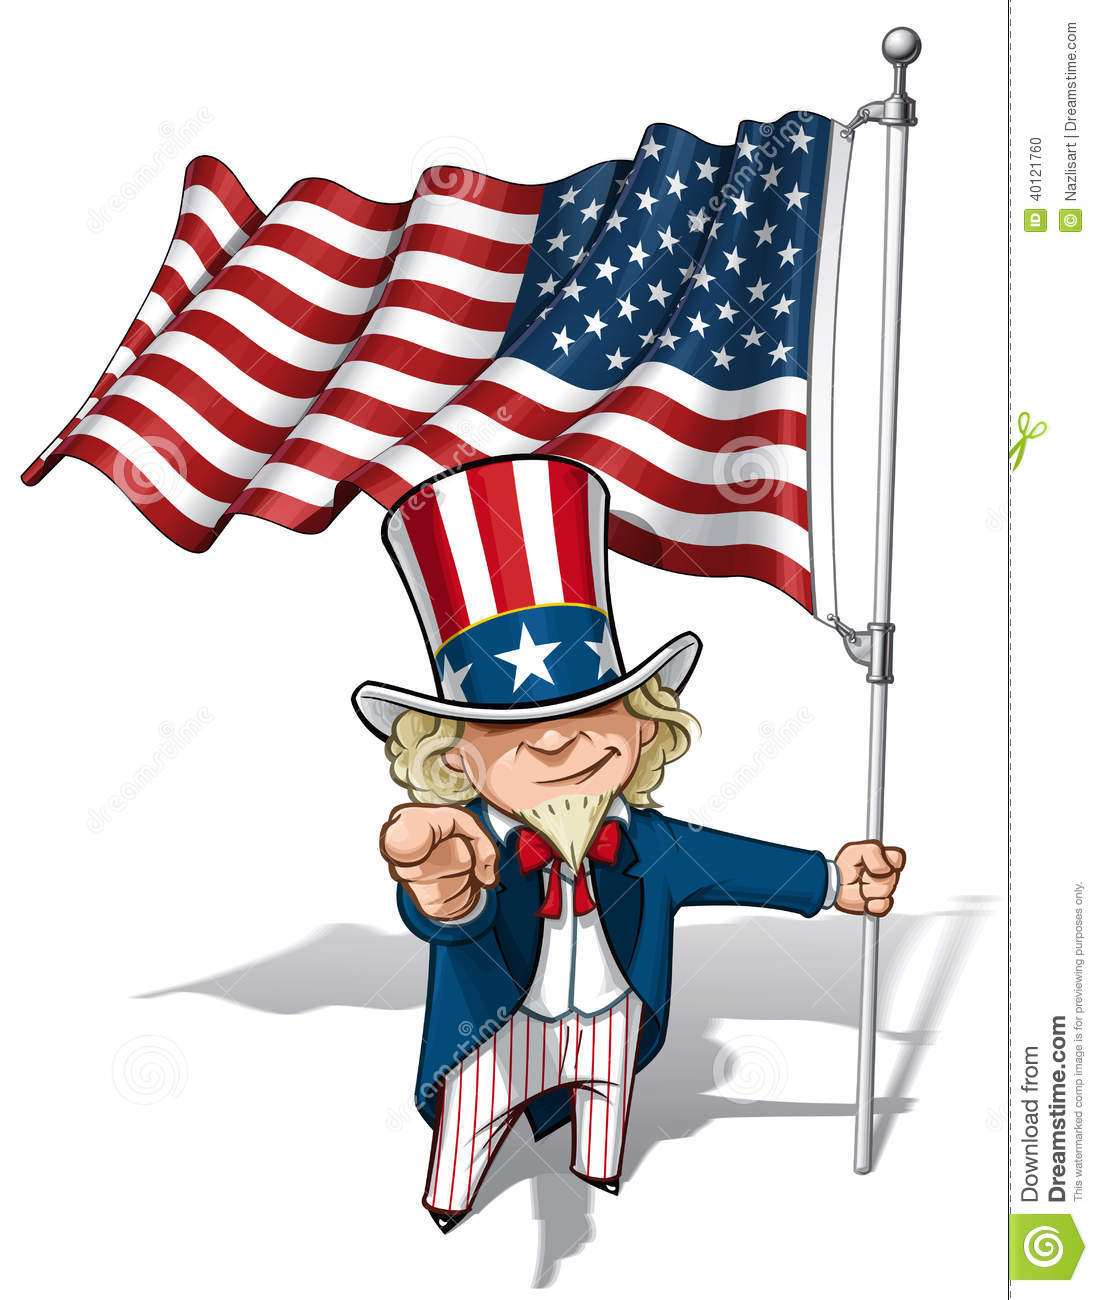 uncle sam i want you american flag stock vector image Waving American Flag Art American Flag Waving Drawing